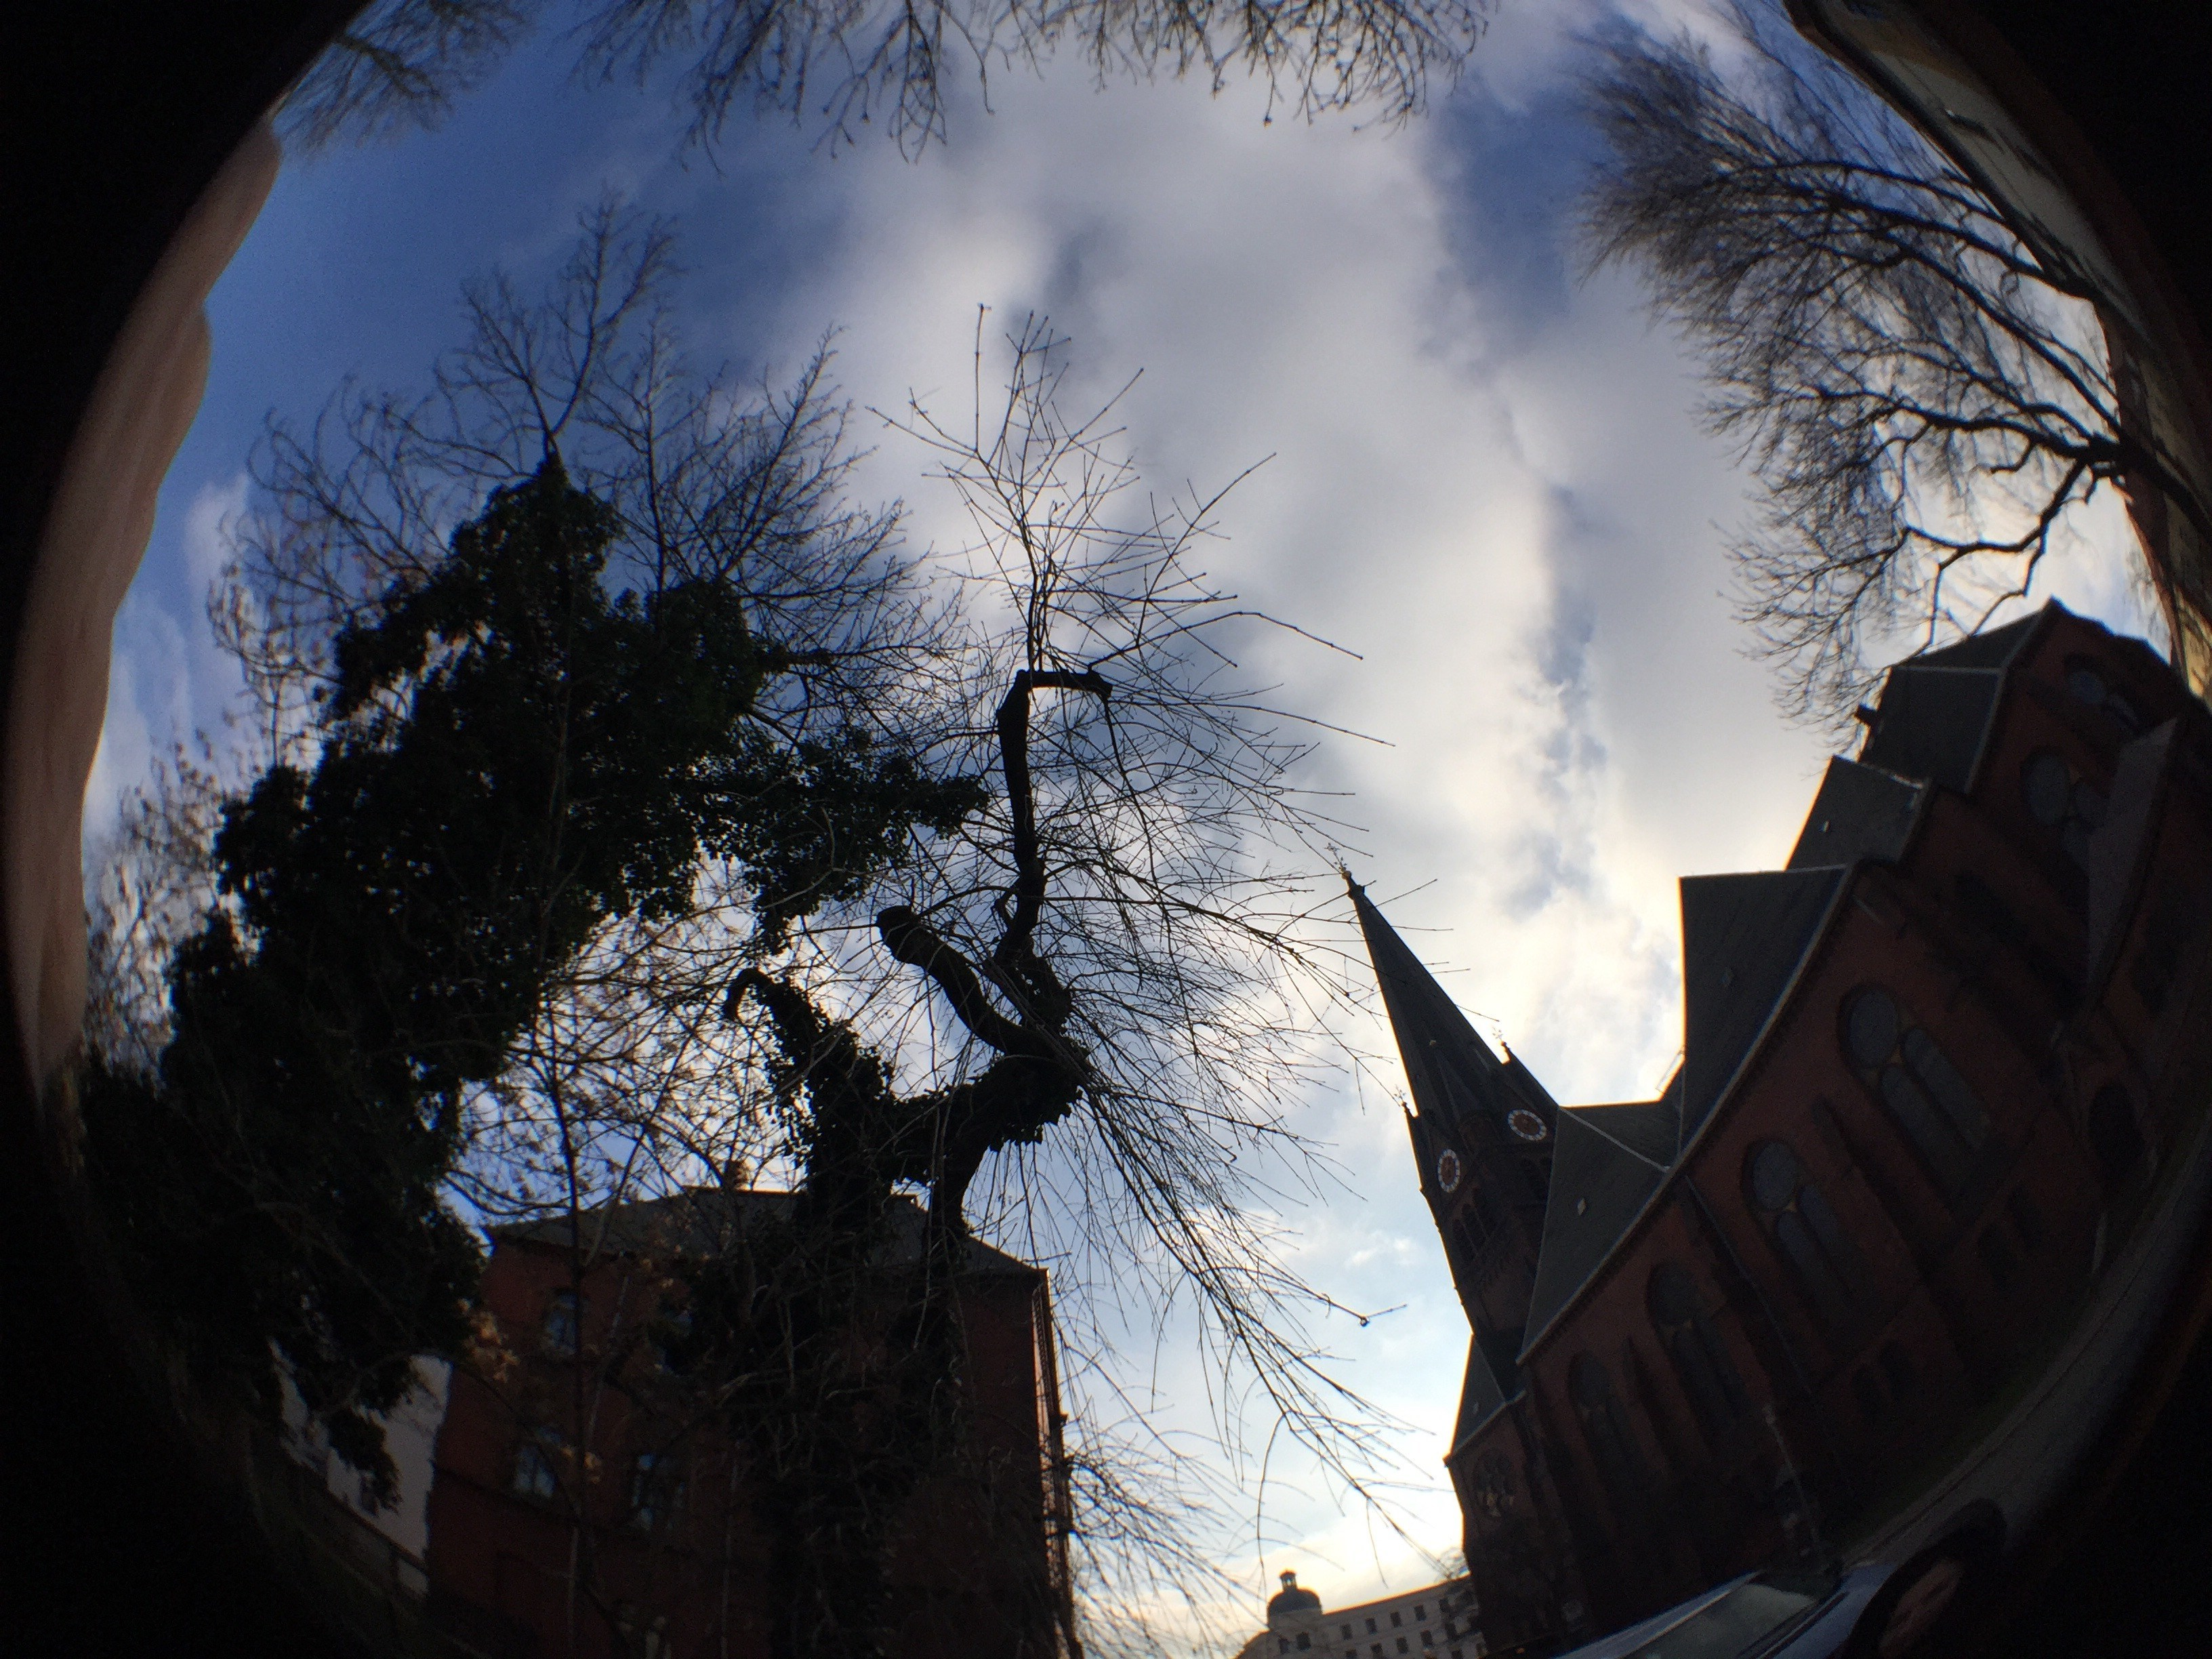 This is what the fisheye lens is all about.